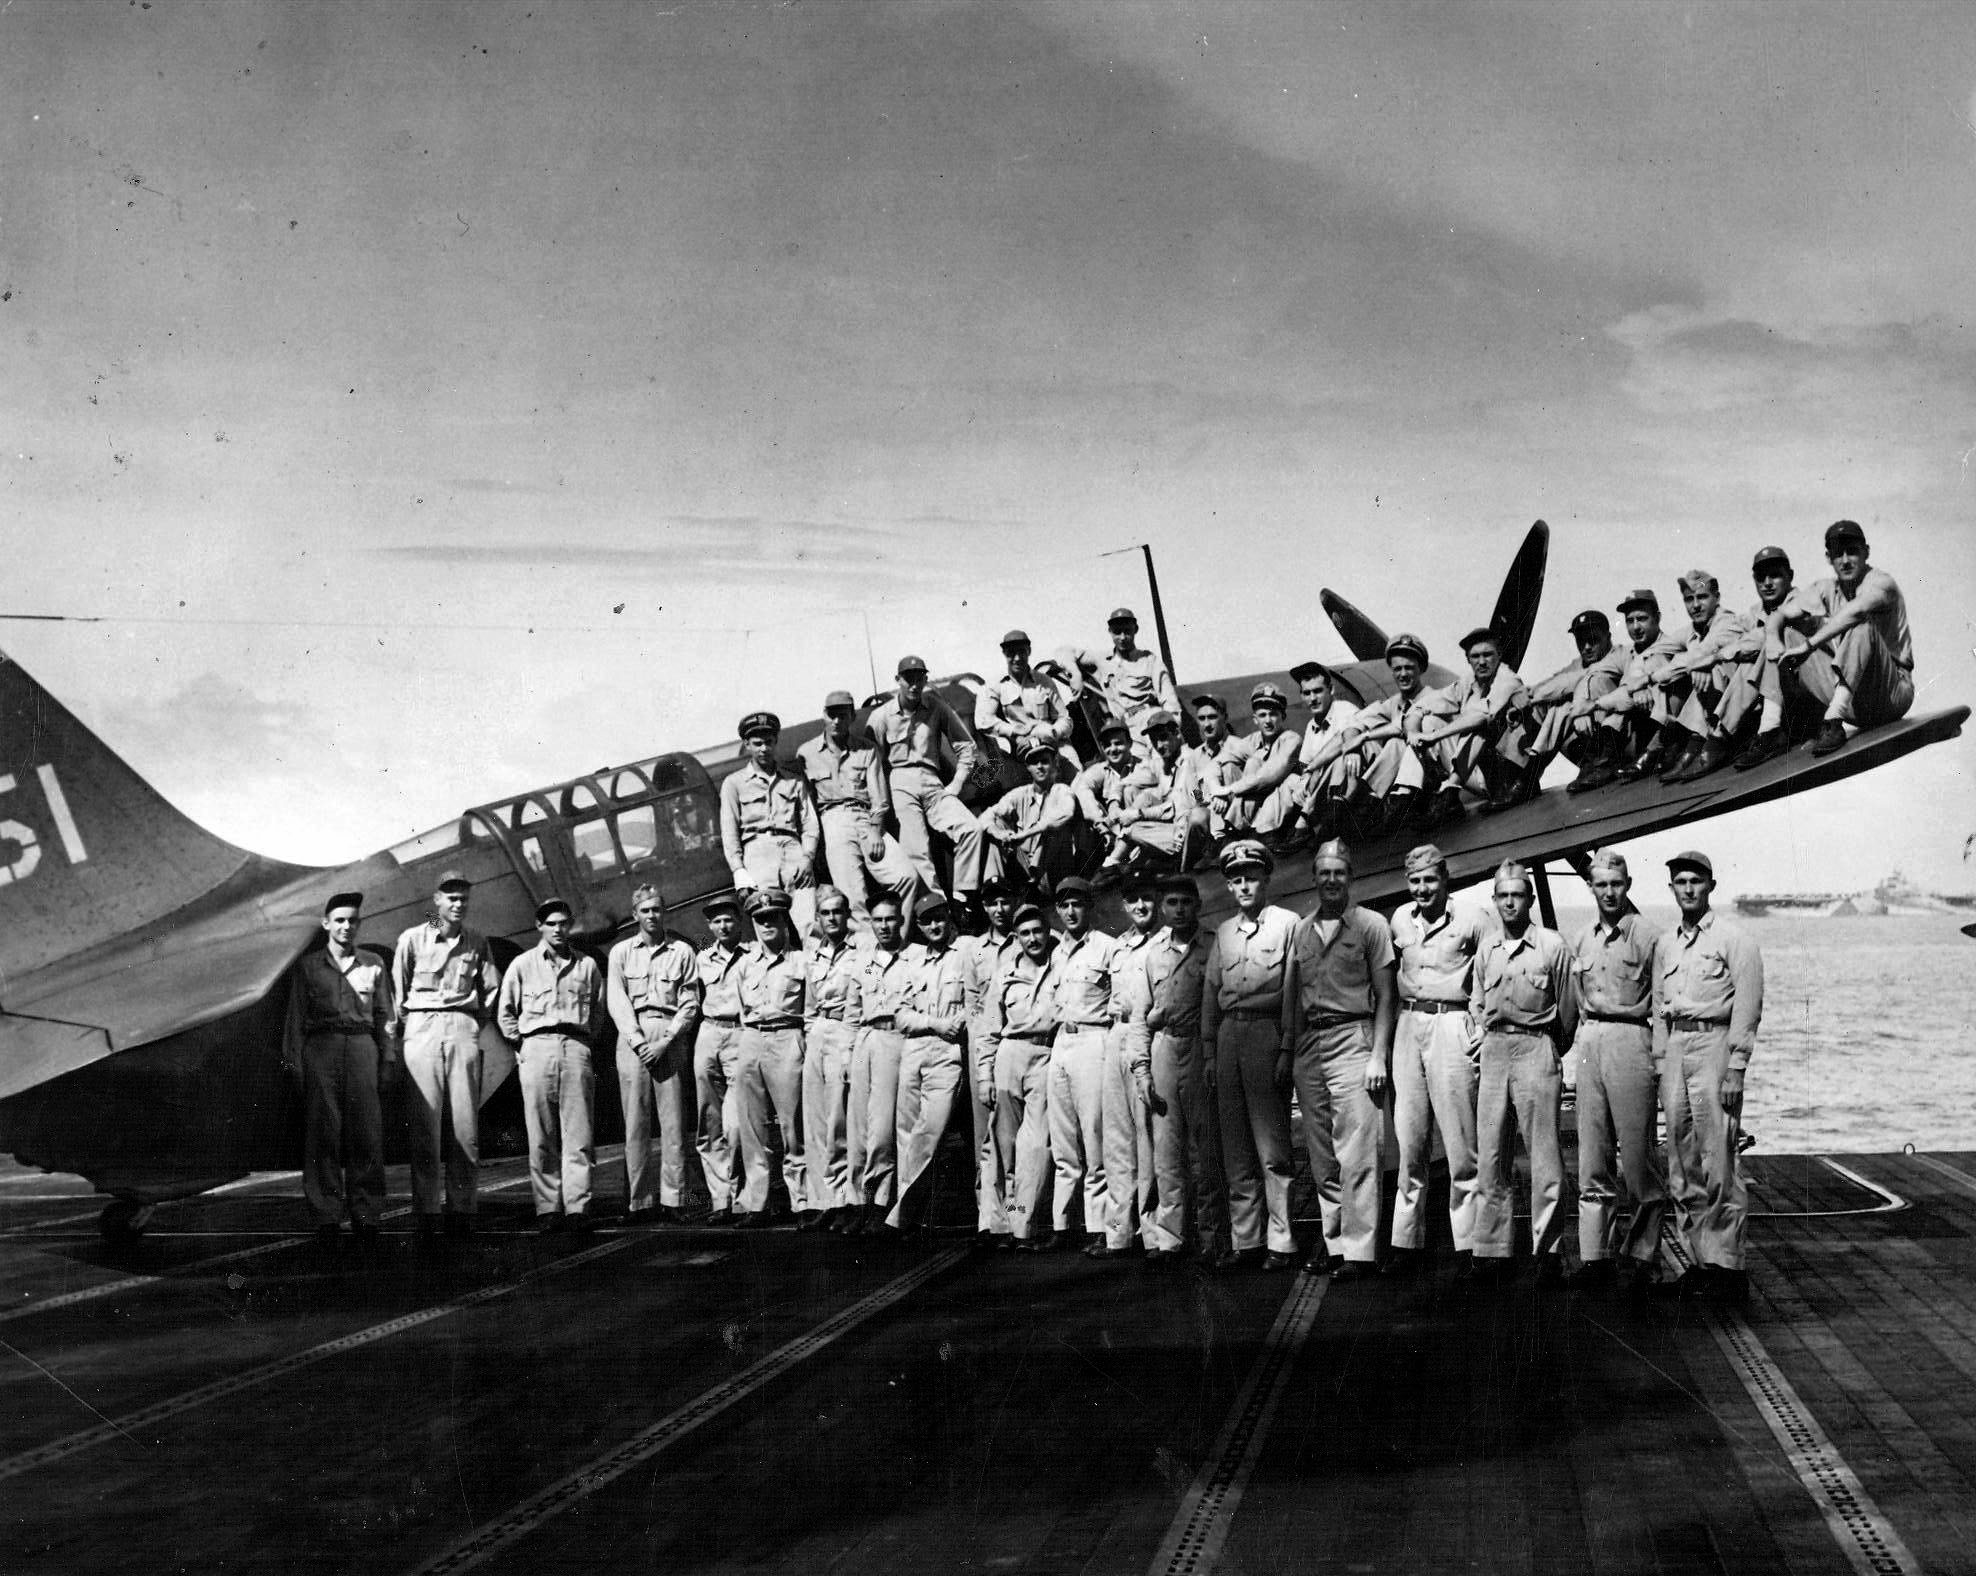 Curtiss SB2C 3 Helldiver VB 4 officers and flt crew aboard CV 6 USS Essex at Ulithi Atoll 1944 02